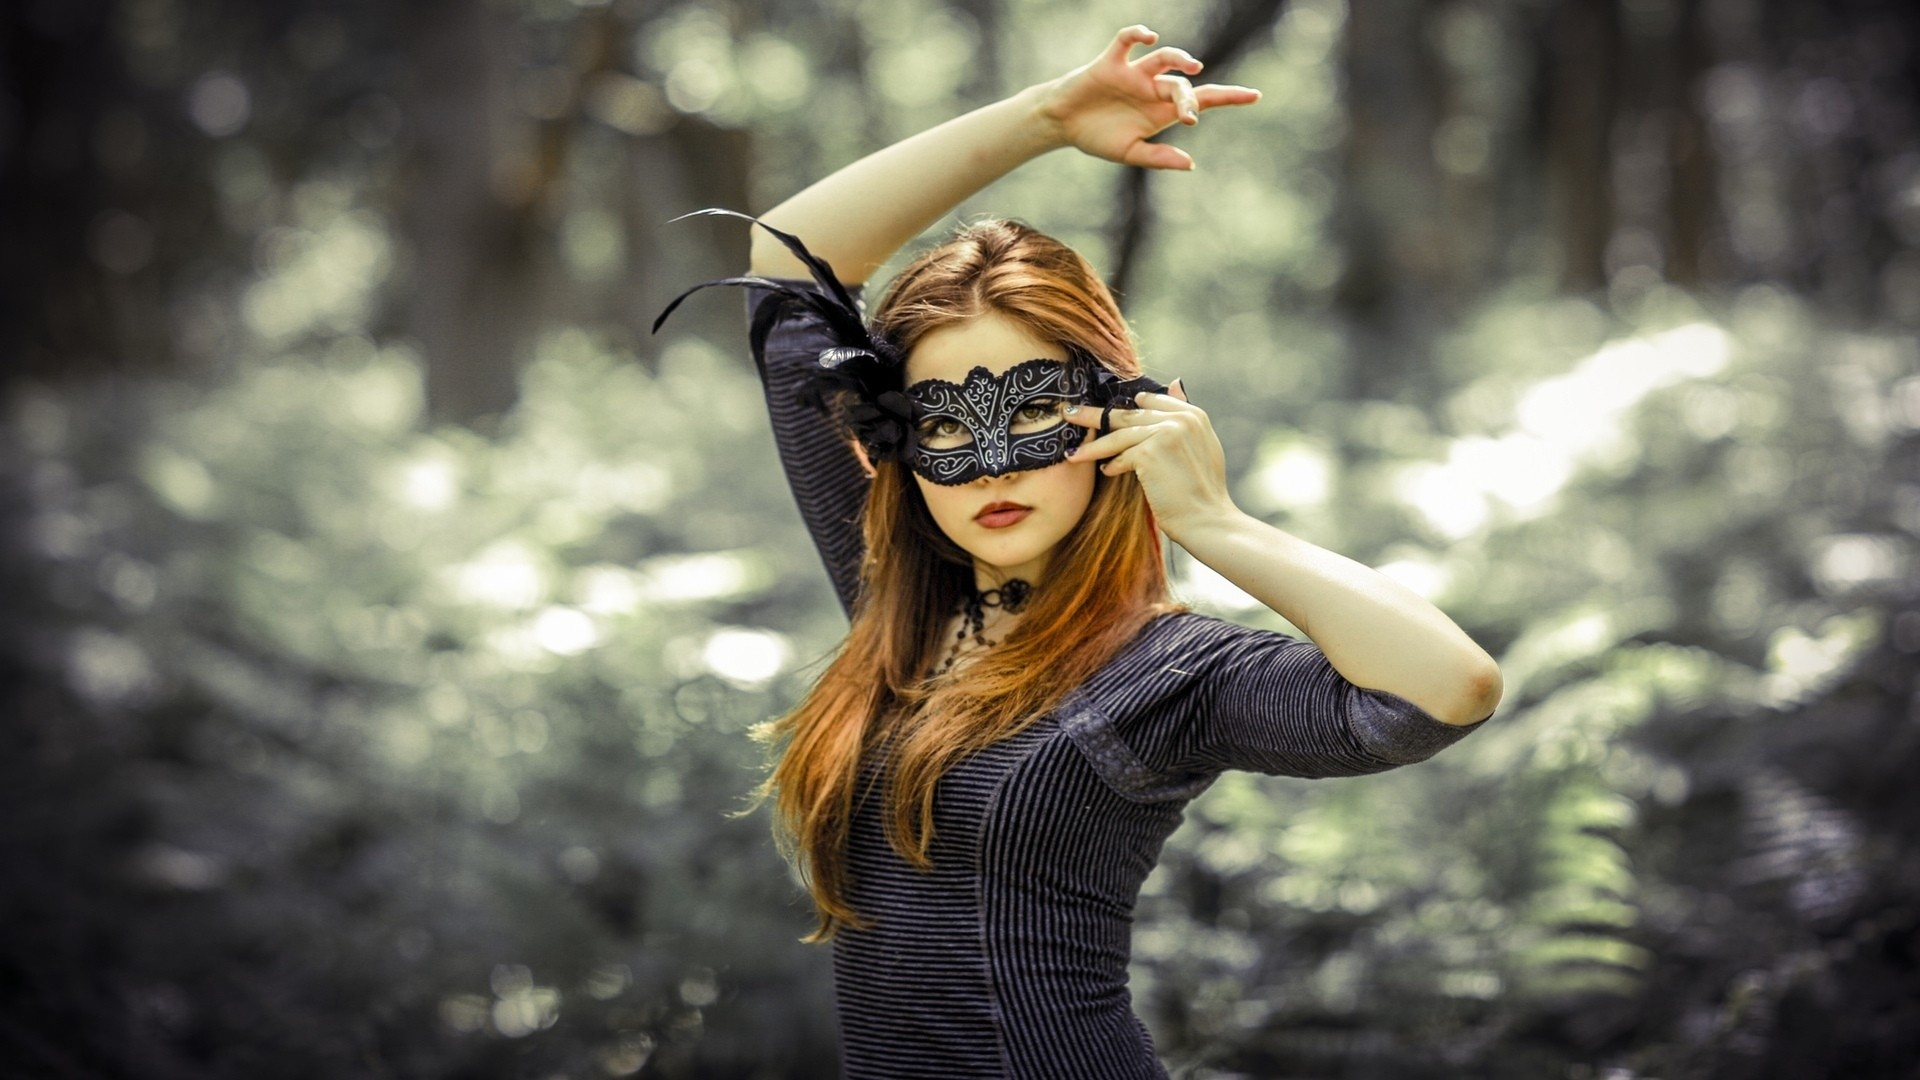 Photography woman-girl-sexy-redhead-leaves-autumn-forest-mask